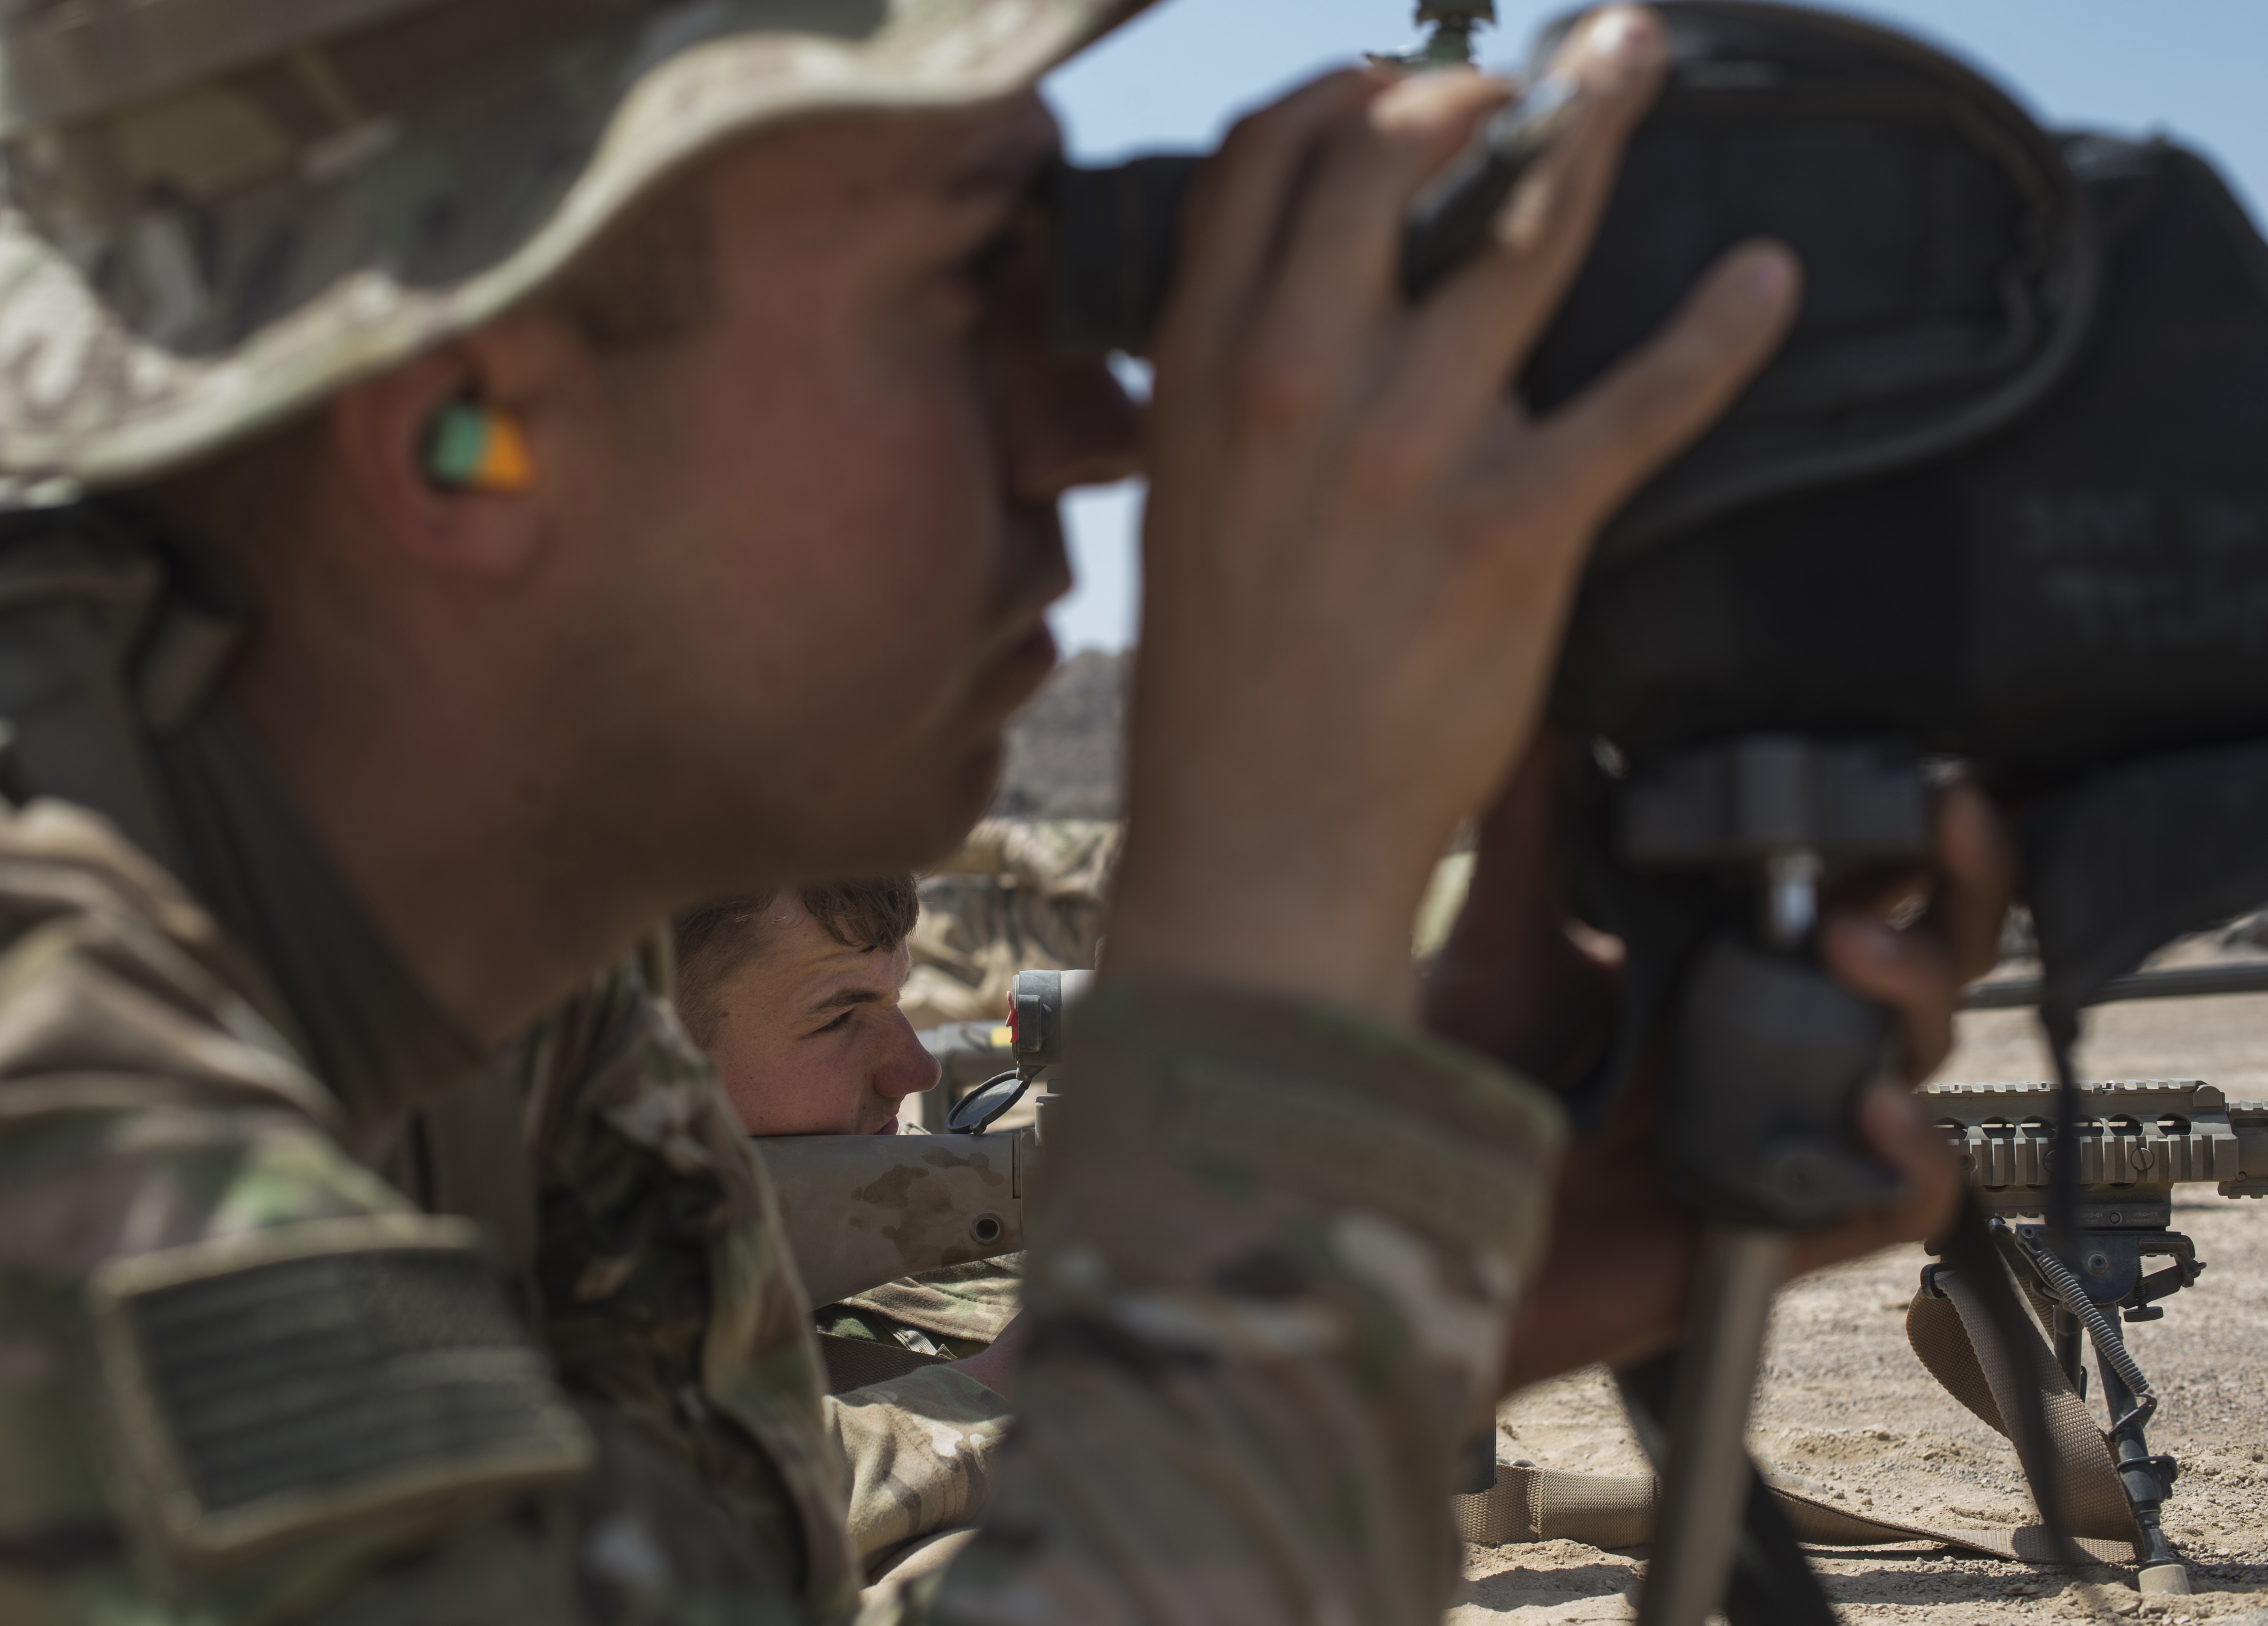 U.S. Army Pfc. Alex Kot, radio transmission operator, front, spots bullet impact points as Pfc. Conner Gillem, M240 gunner, both assigned to Alpha Company, 3rd Battalion, 15th Infantry Regiment, fires a M110 Oct. 14, 2015, in Arta, Djibouti. Scout snipers from Alpha Company participated in 40 hours of classroom instruction followed by live fire training with multiple sniper rifles. (U.S. Air Force photo by Senior Airman Peter Thompson/Released)